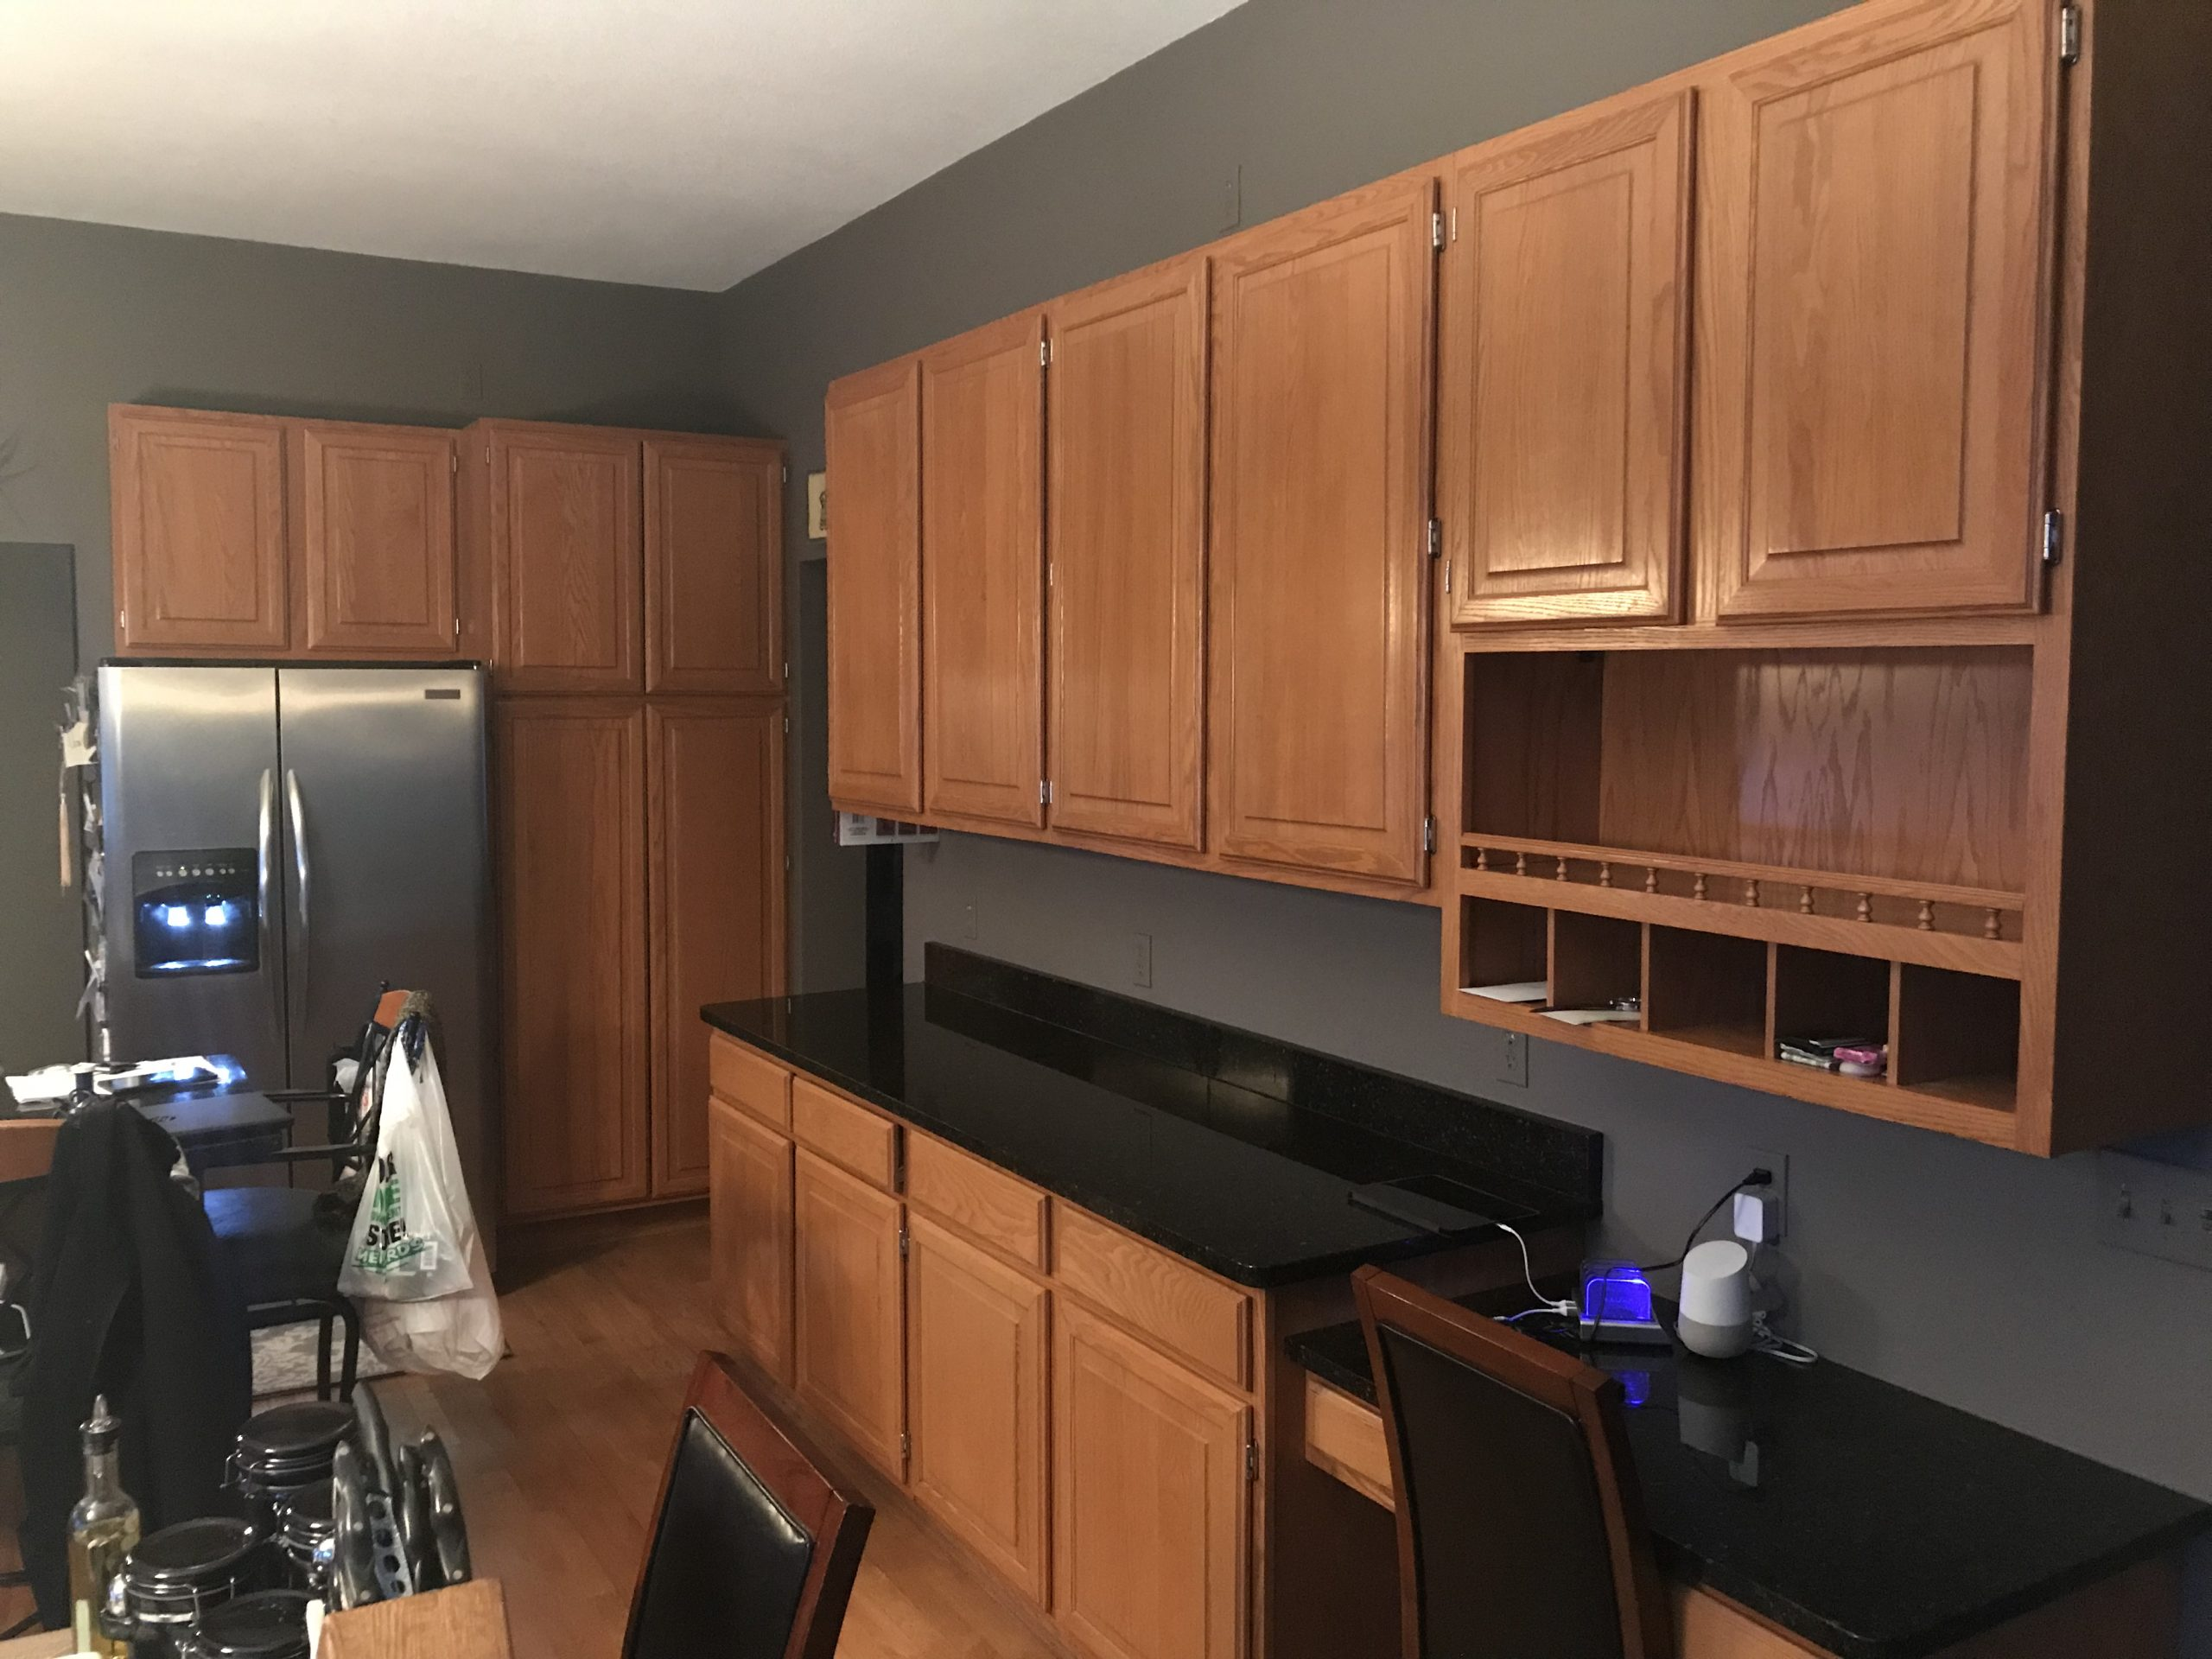 Residential Interior Cabinet Painting Project Before